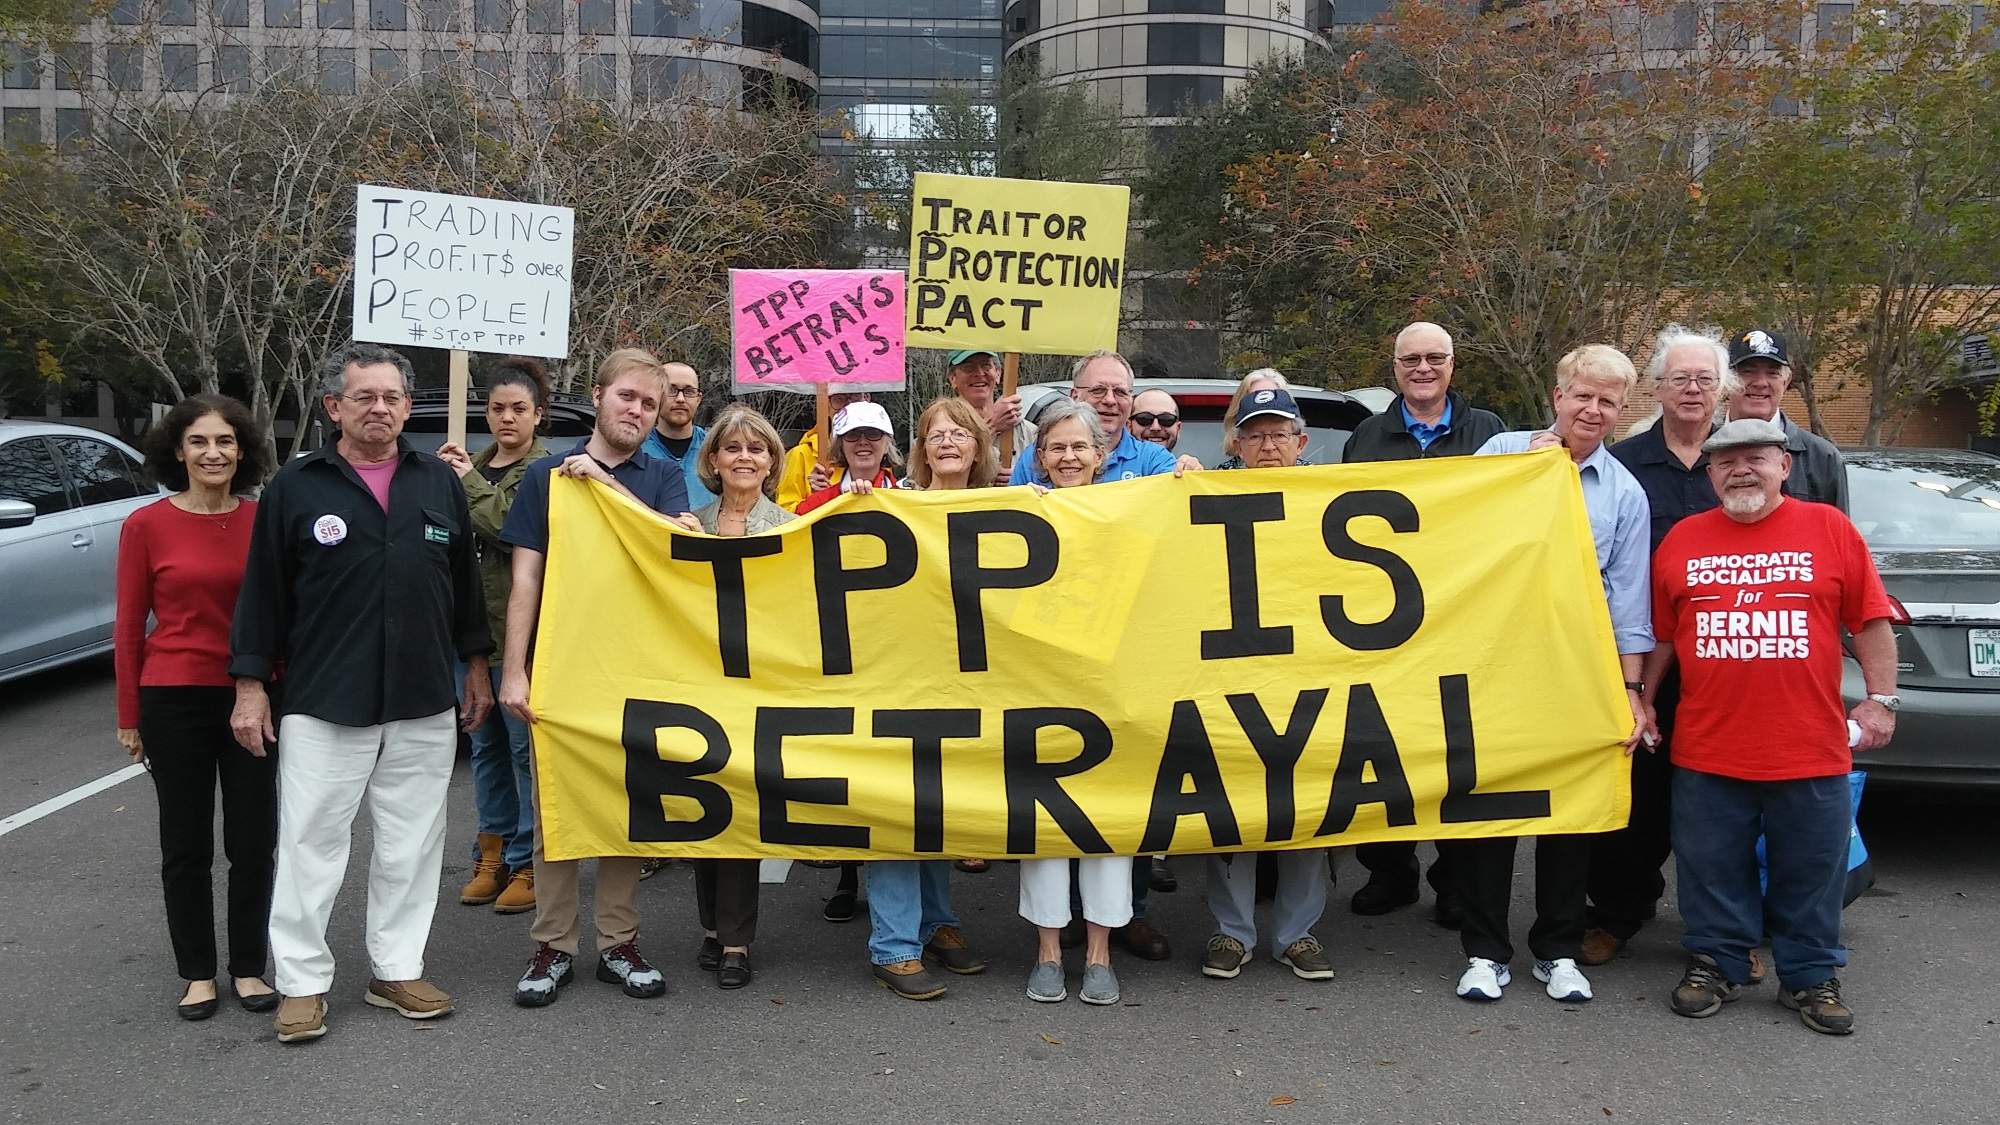 tpp_is_betrayal_banner.jpg